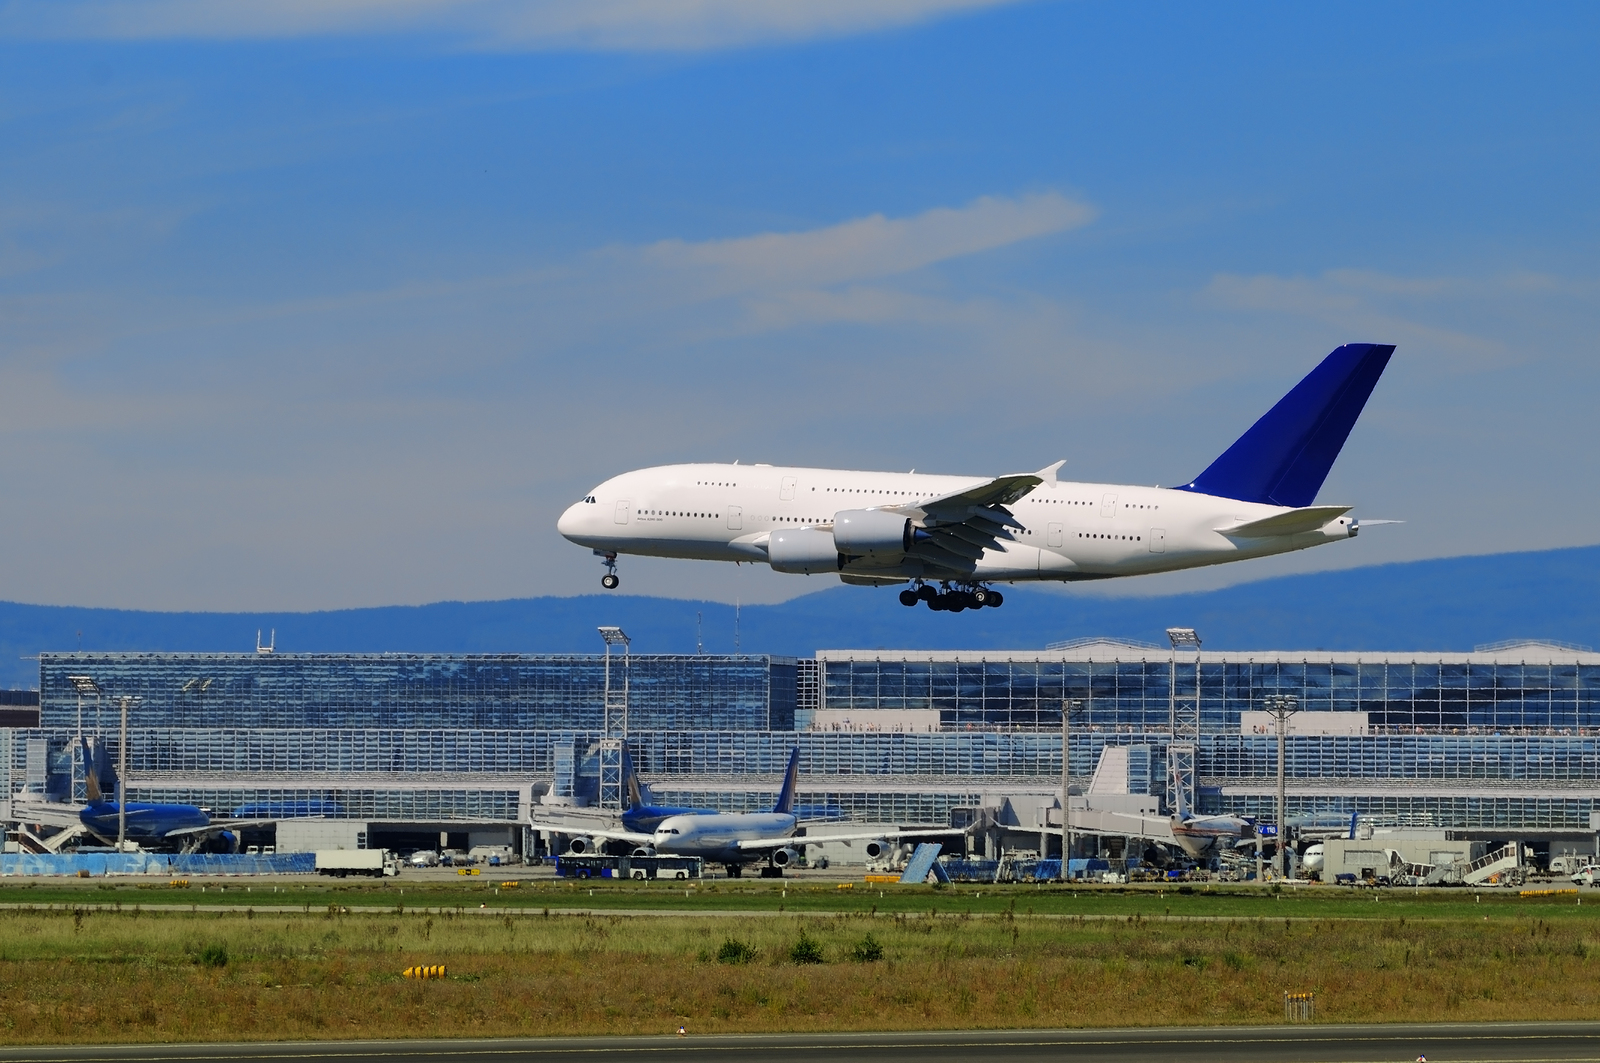 Security Breaches Reveal Airport Vulnerabilities Carrier